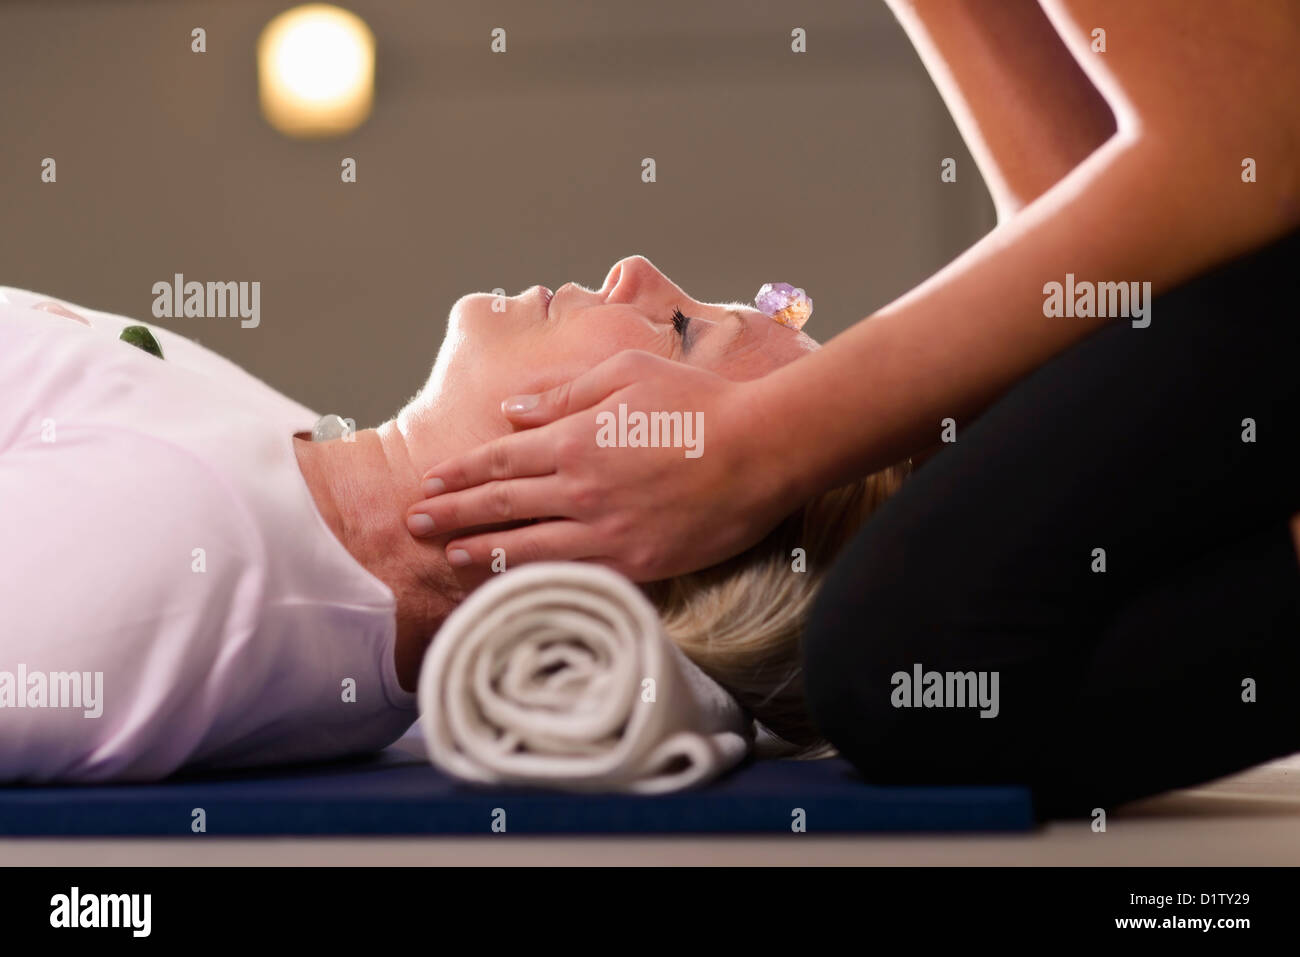 Reiki therapy with girl working as spirit healer, arranging crystals and gemstones on female client for treatment - Stock Image